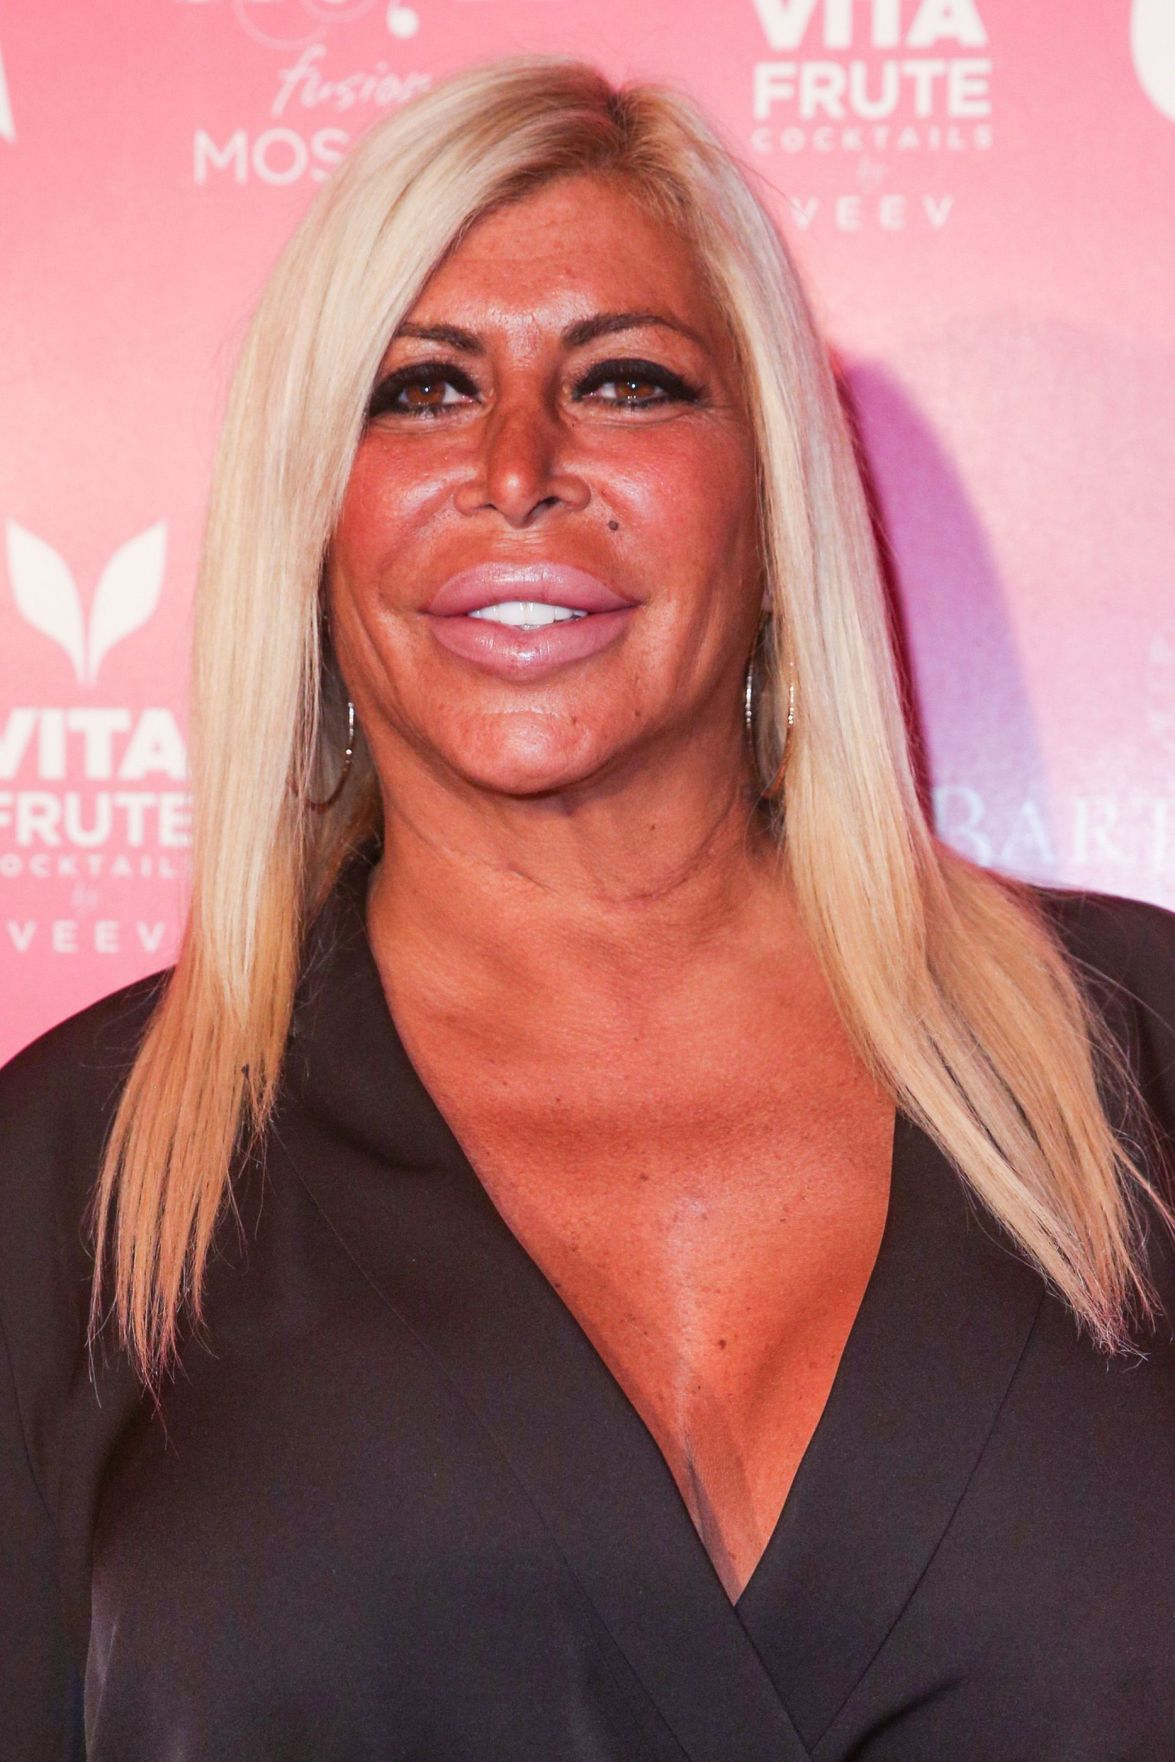 Reality star 'Big Ang' faces cancer with hope, family